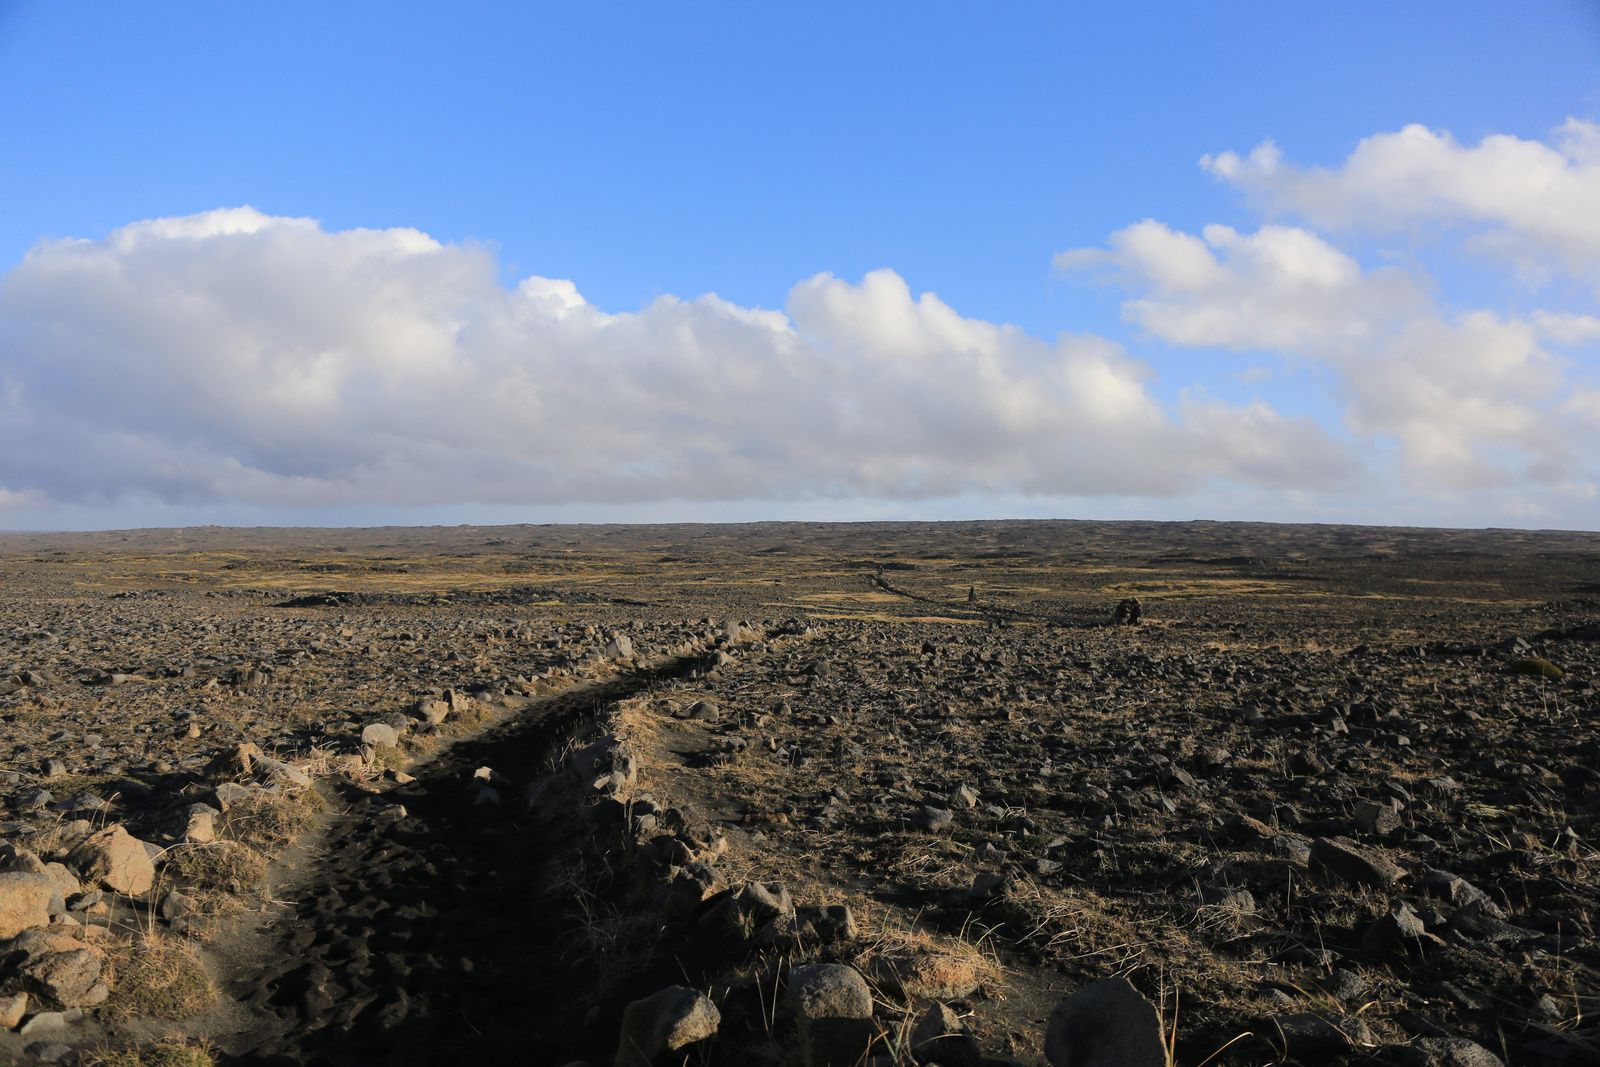 The huge Bergholl lava field to cross to reach the cliffs of Hafnaberg ... not to leave the path and the cairns under pain of getting lost - photo © Bernard Duyck 10.2016